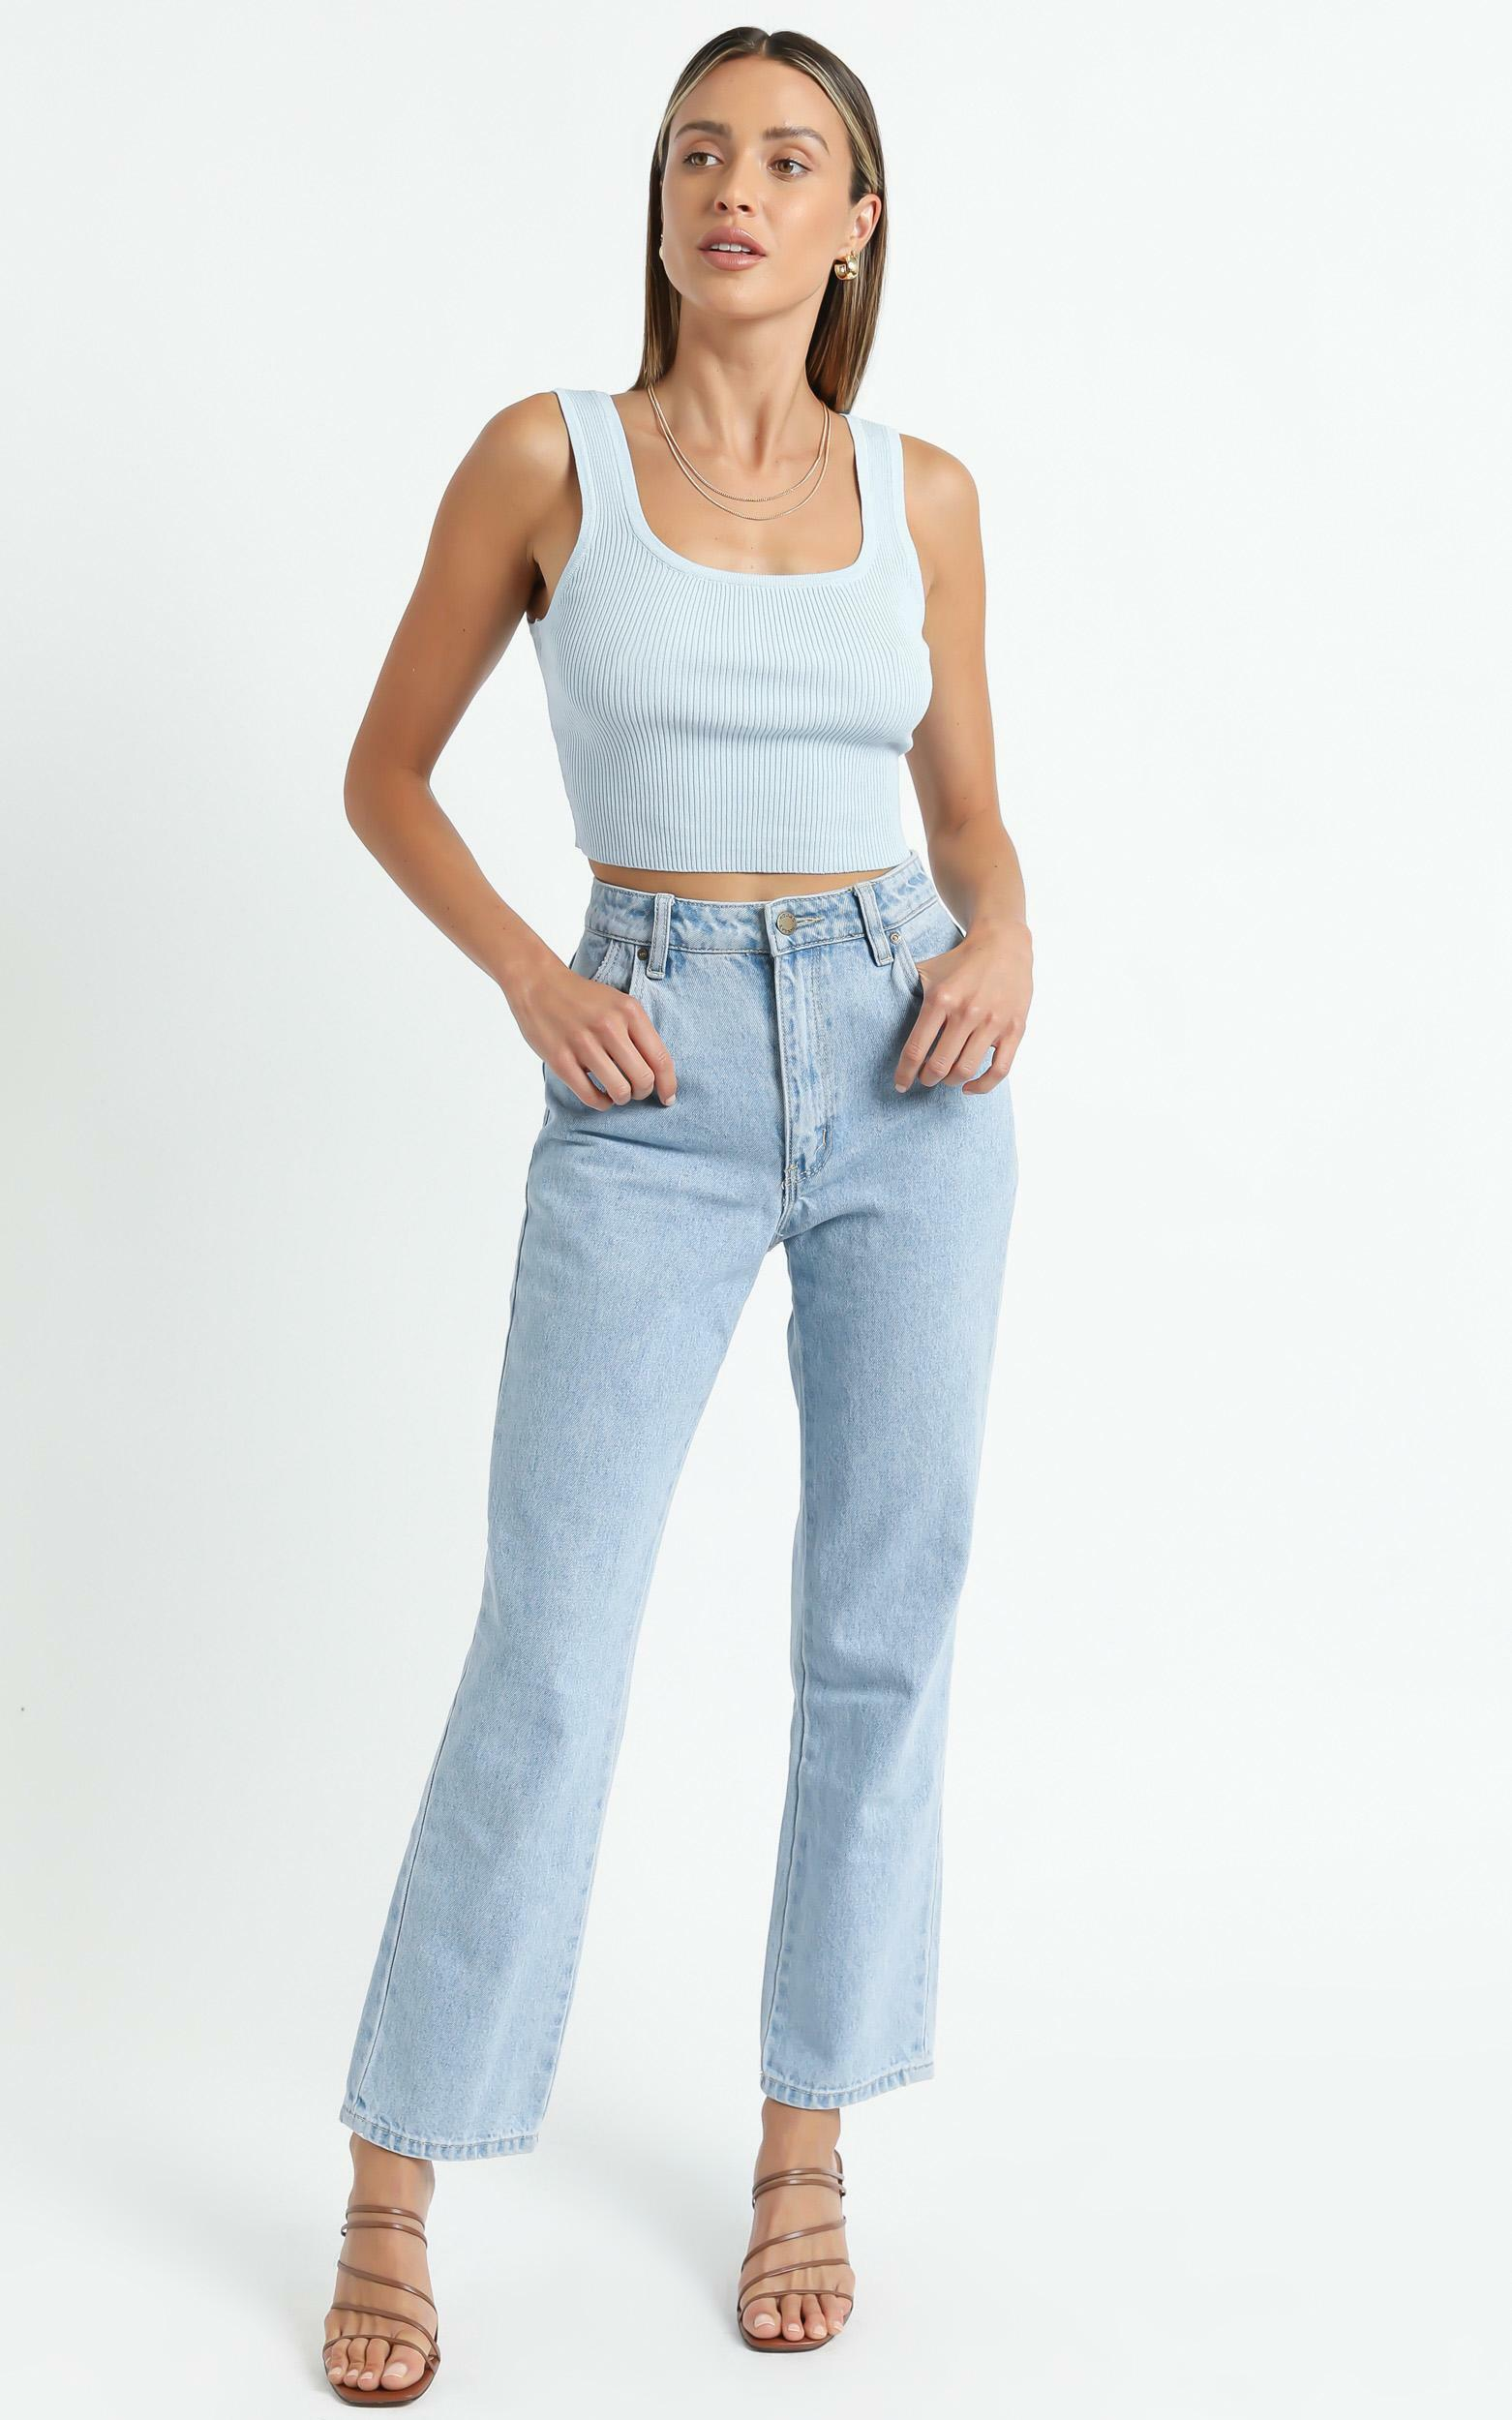 Essi Top in Blue - 6 (XS), Blue, hi-res image number null